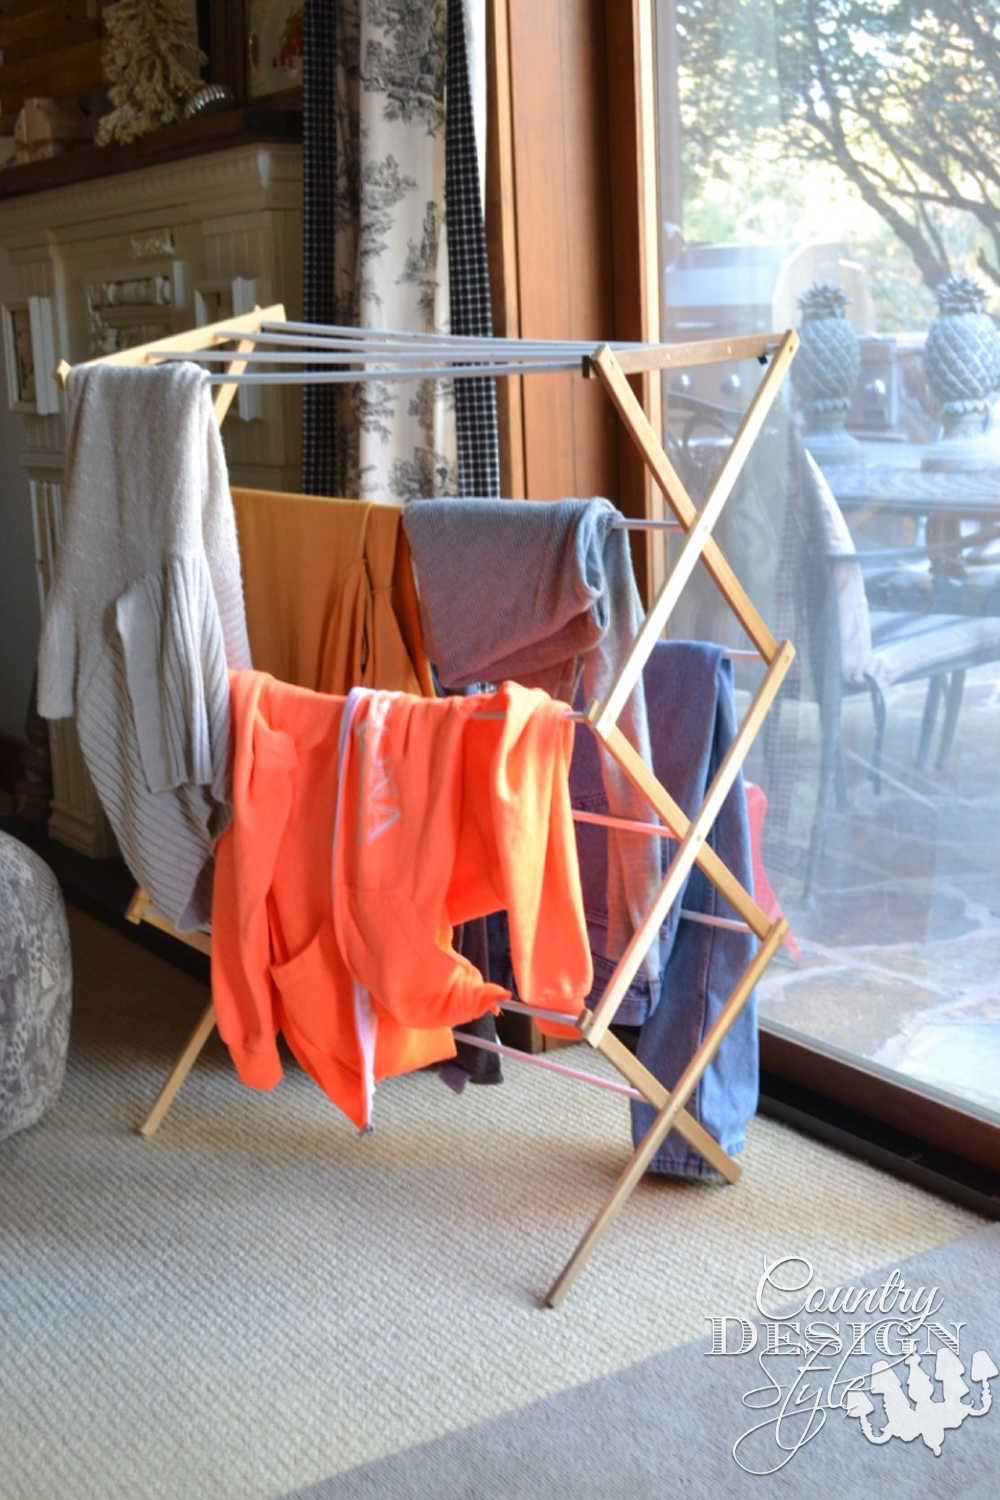 Wonky drying rack | Country Design Style | countrydesignstyle.com